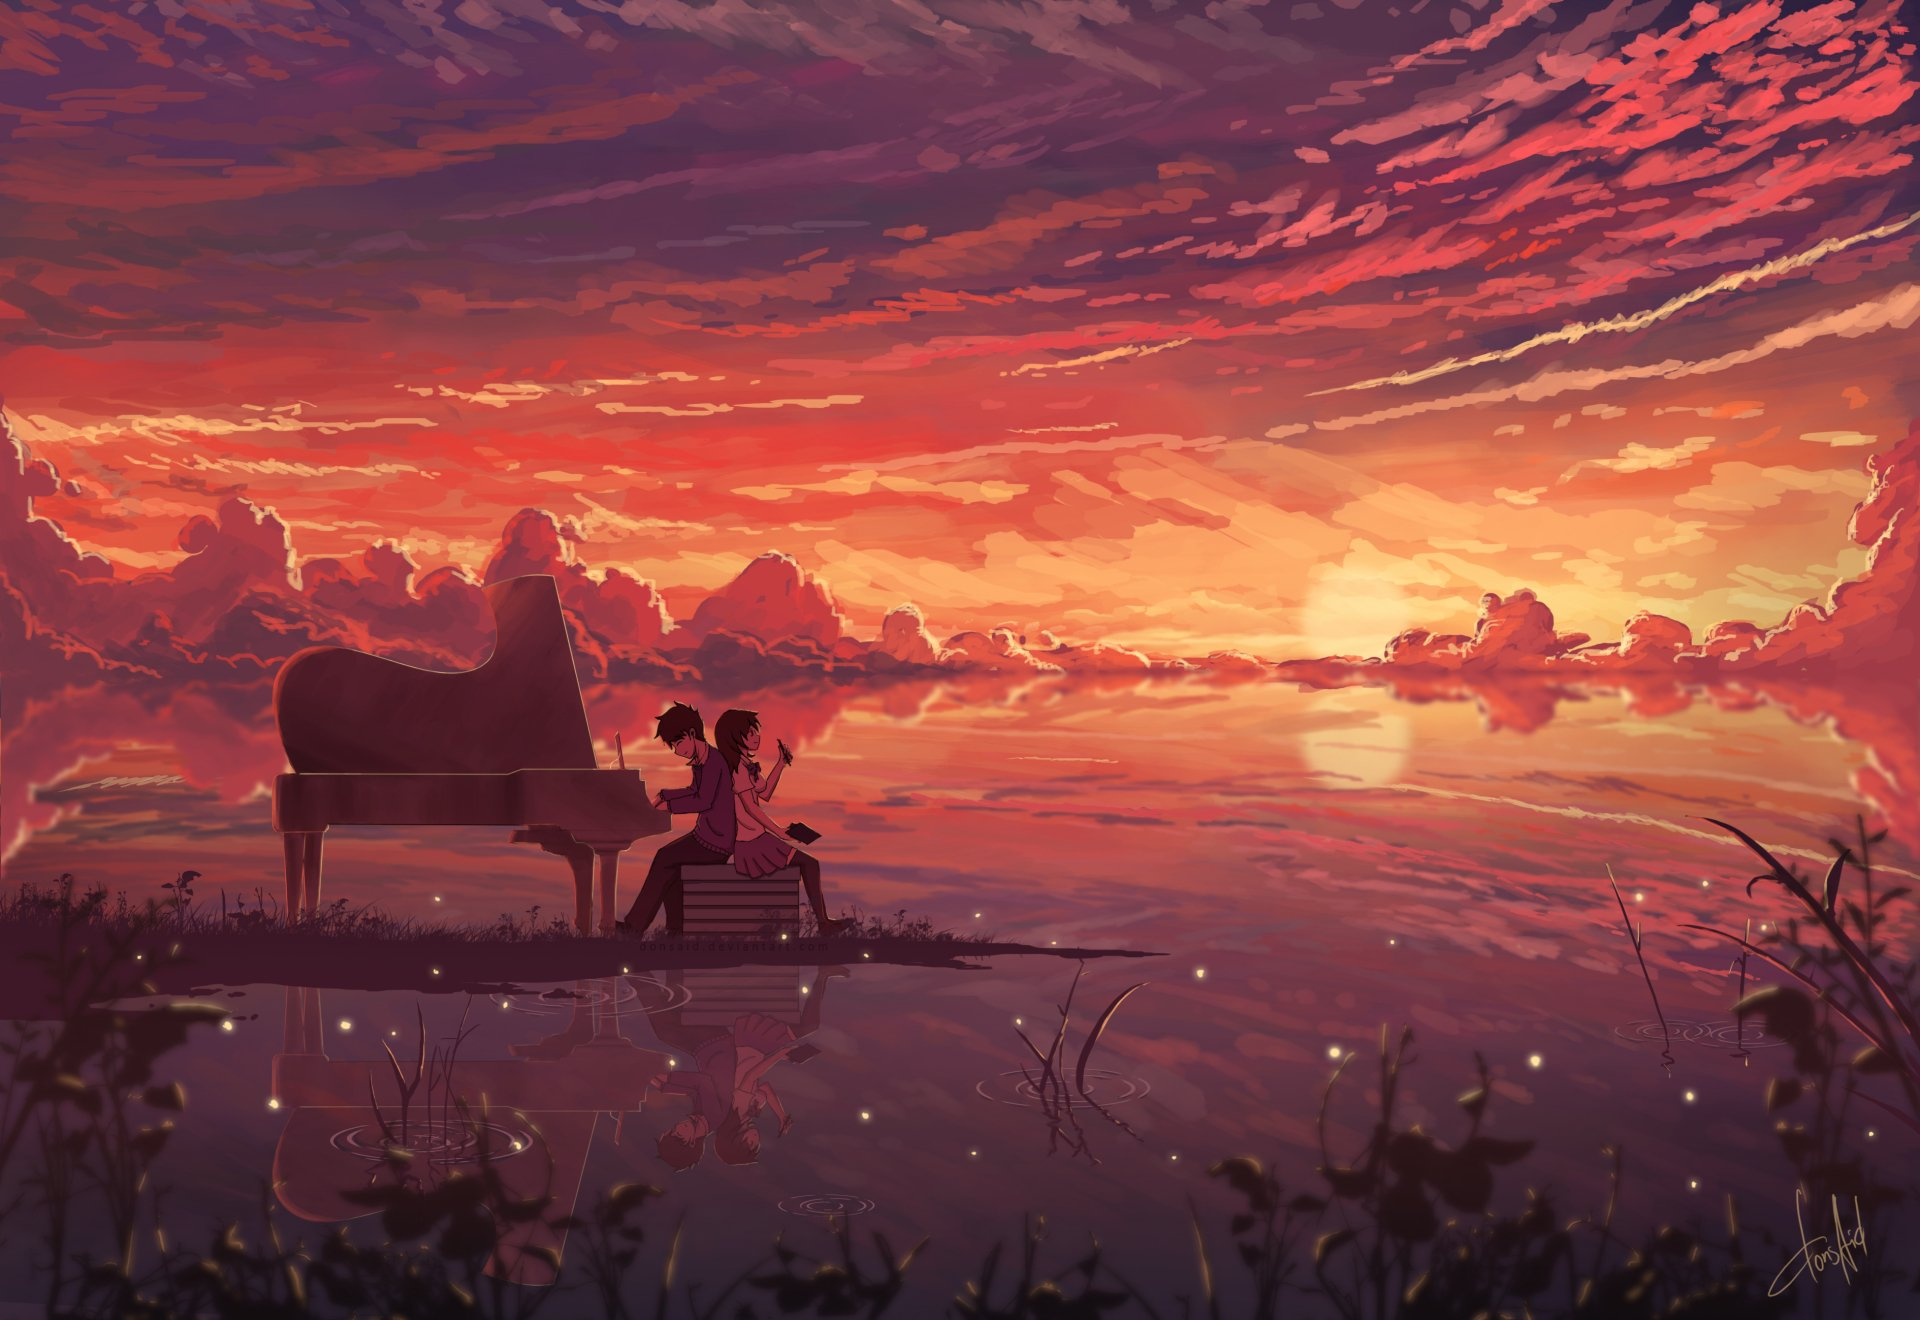 Anime - Original  Piano Girl Boy Sunset Sky Cloud Headphones Anime Reflection Orange Horizon Original (Anime) Wallpaper